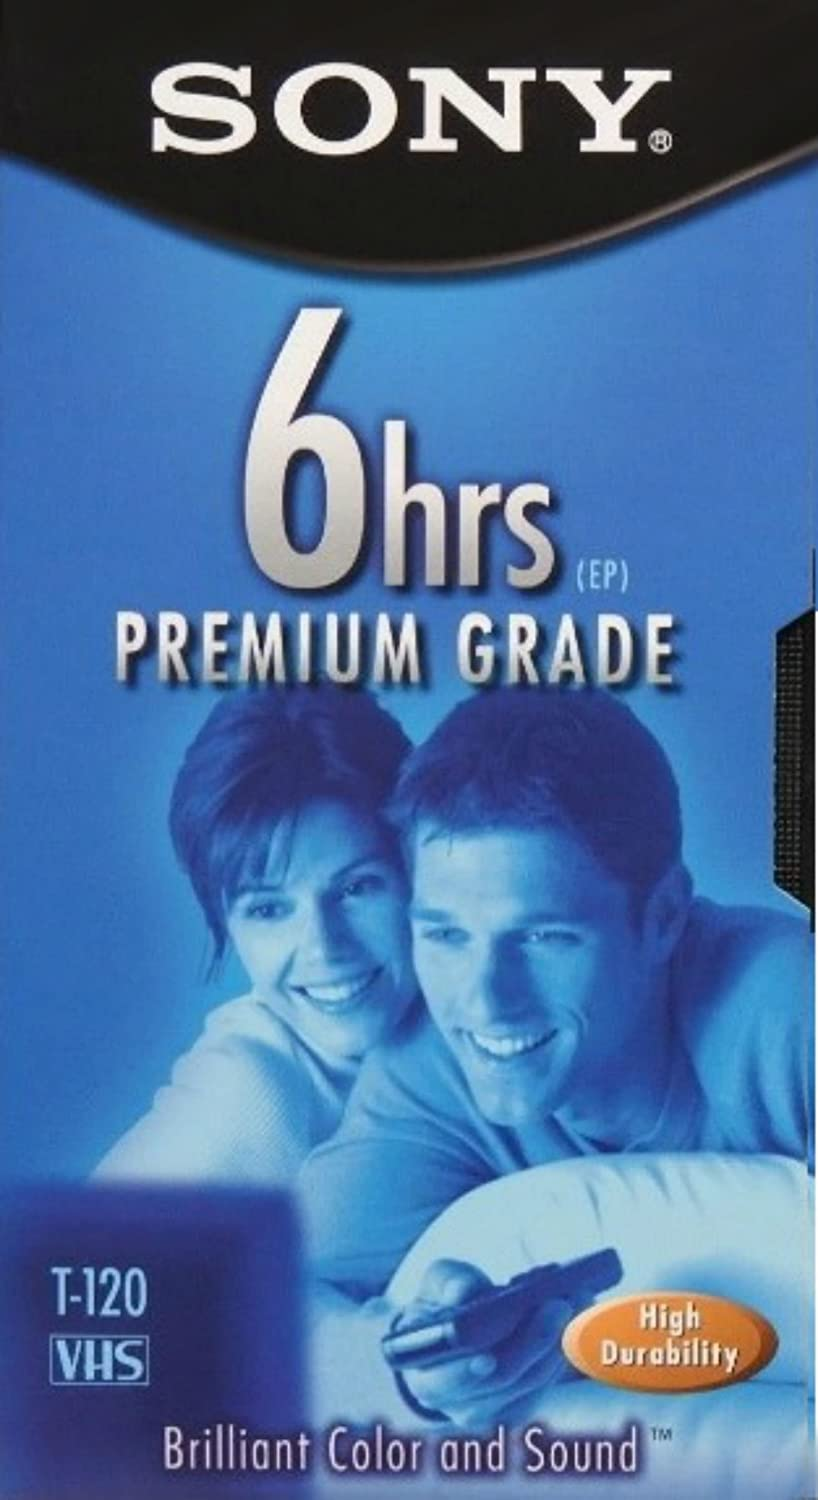 3-Pack EP T-120 VHS Tapes SONY 3T120VR 6hrs